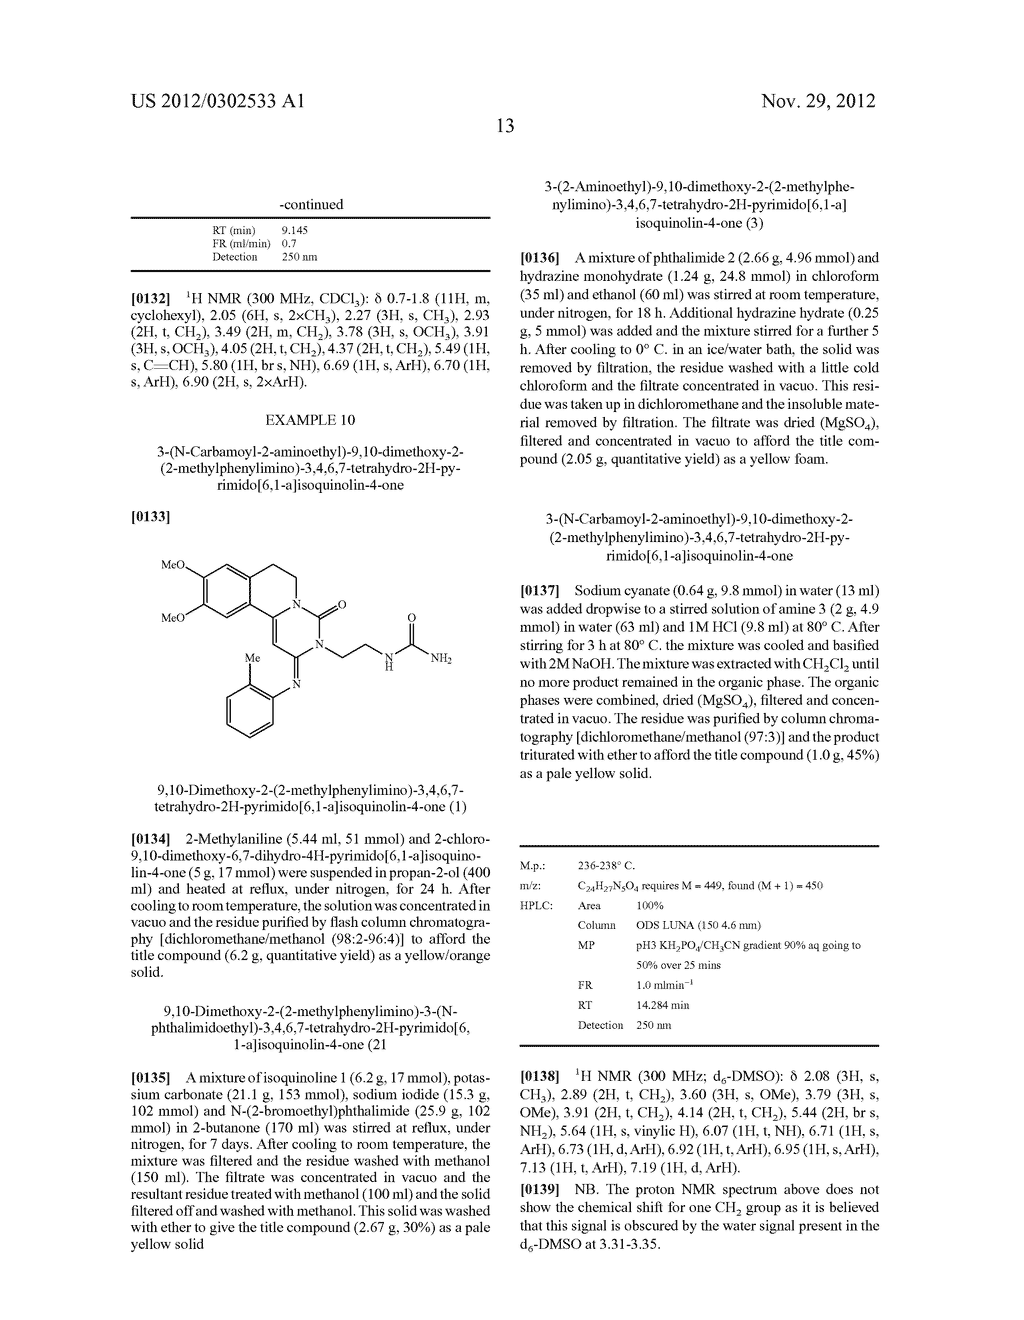 DERIVATIVES OF PYRIMIDO [6,1-A] ISOQUINOLIN-4-ONE - diagram, schematic, and image 19